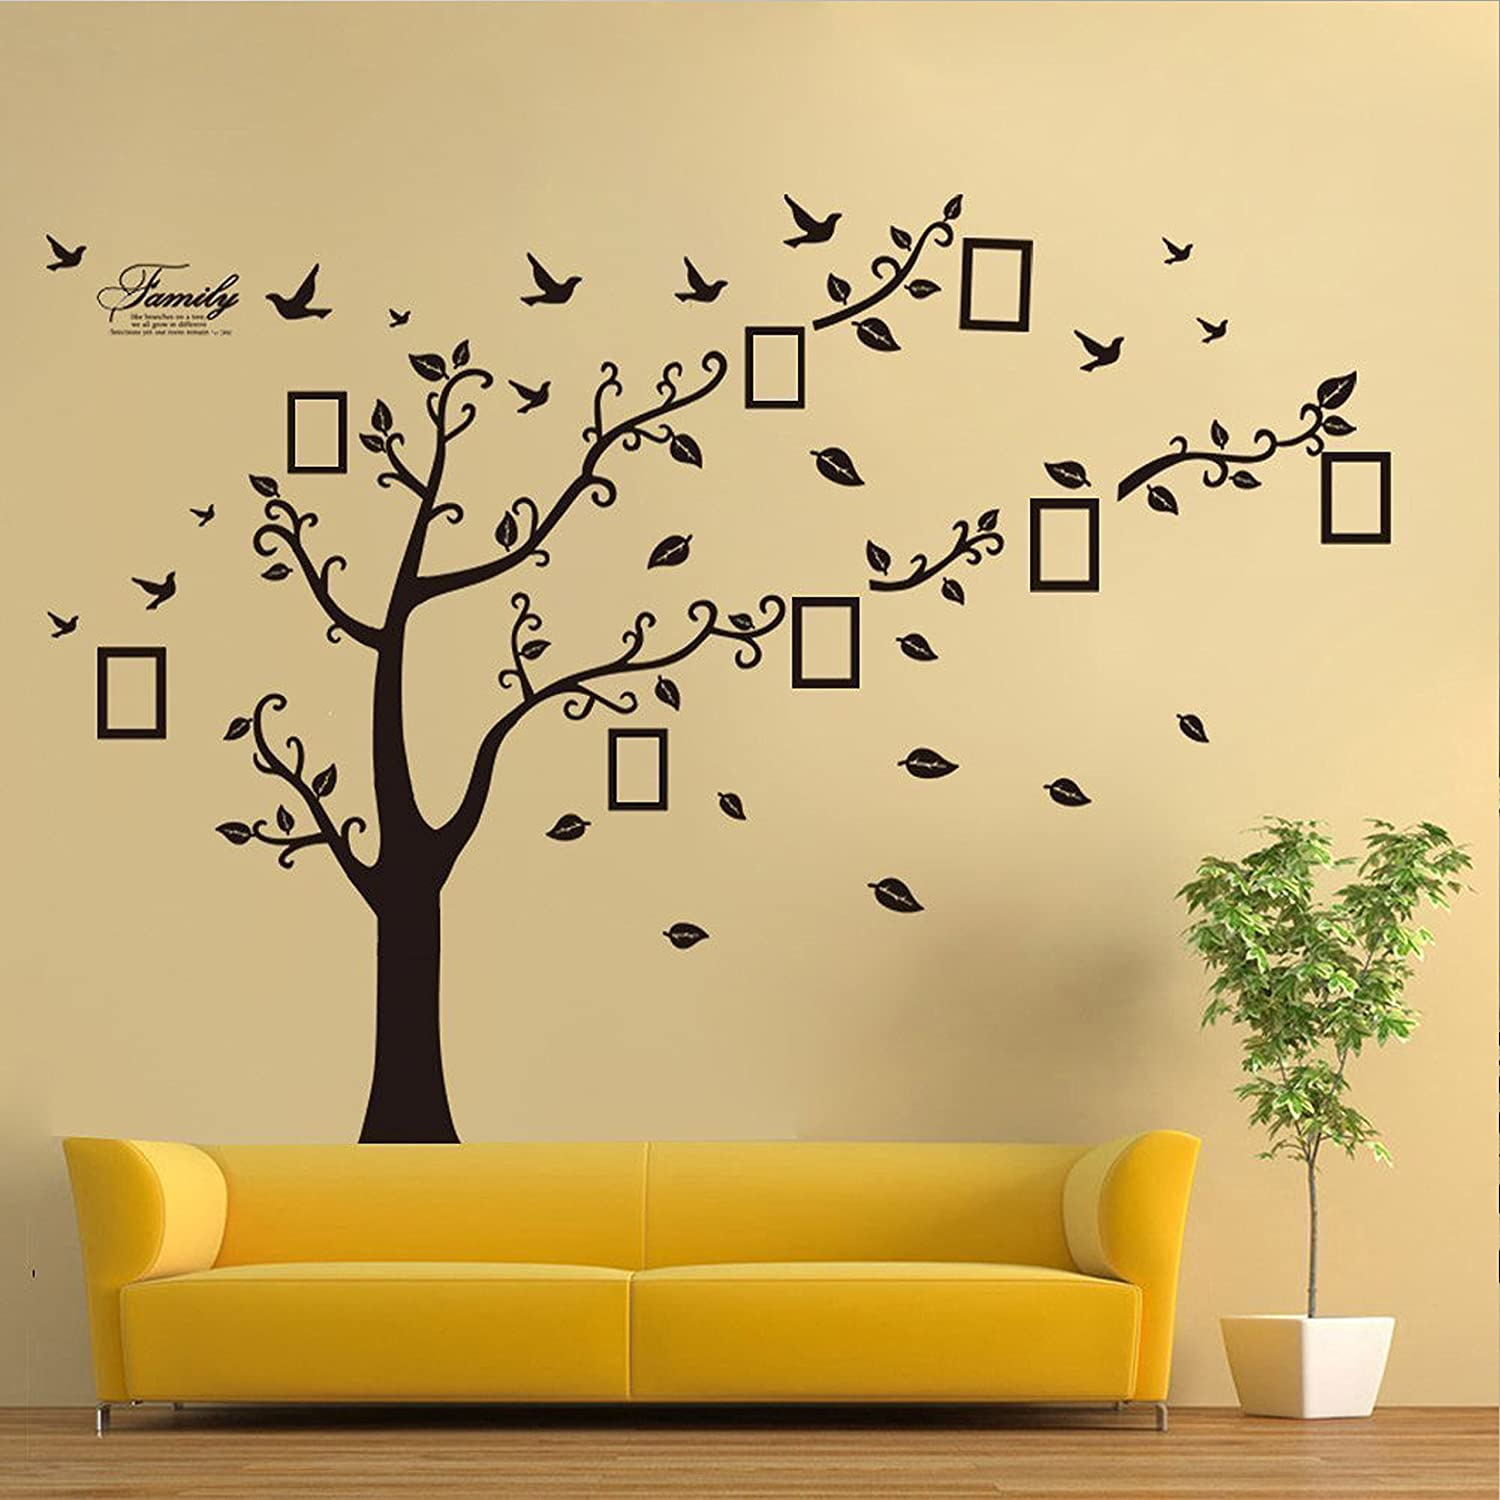 DecalGalore Large Family Memory Tree Wall Decal, History Decor Mural for Home, Bedroom, Living Room, Stencil Decoration, DIY Photo Gallery Frame Decor ...